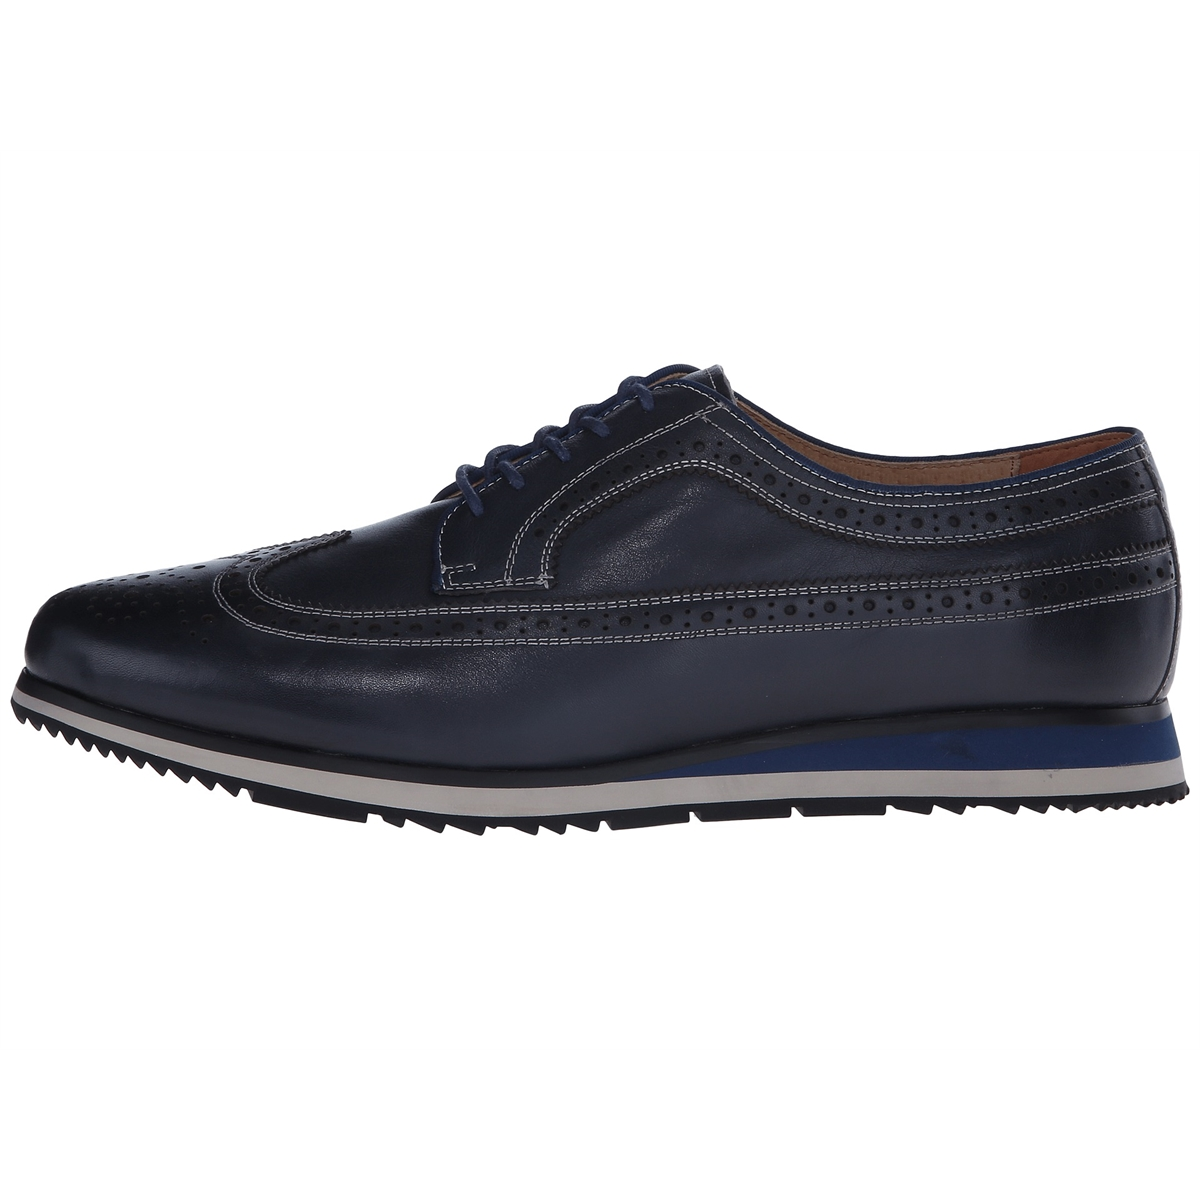 Florsheim Men Flux Wingtip Oxford Shoes by Florsheim